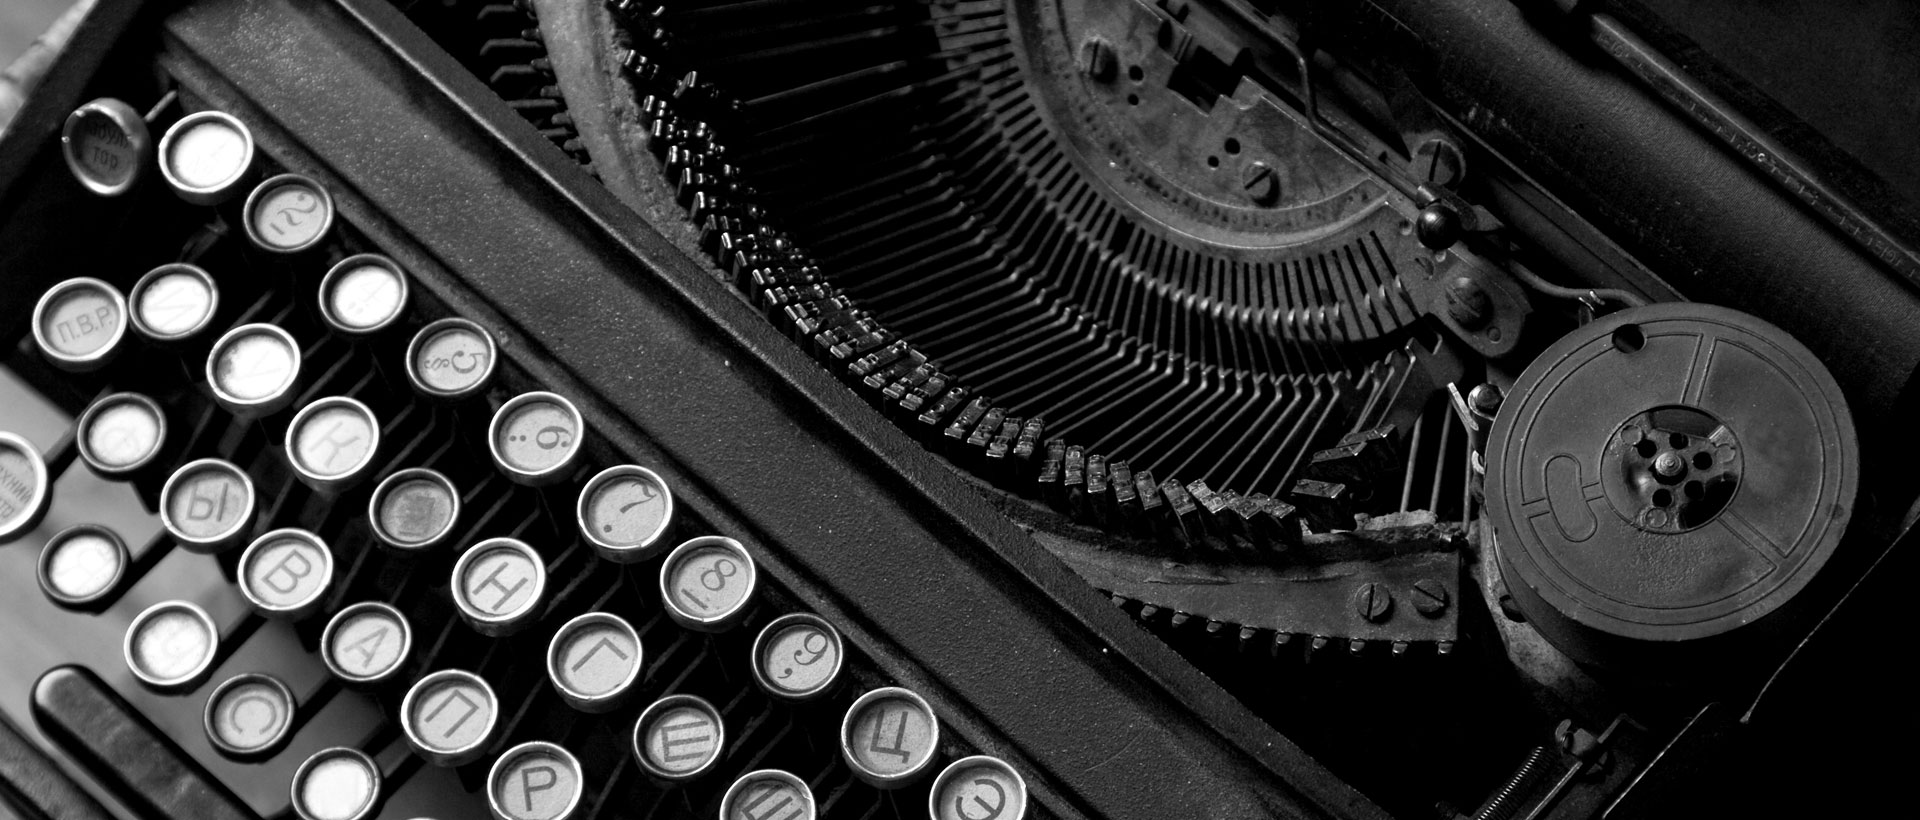 Black & white image of antique typewriter with exposed mechanics